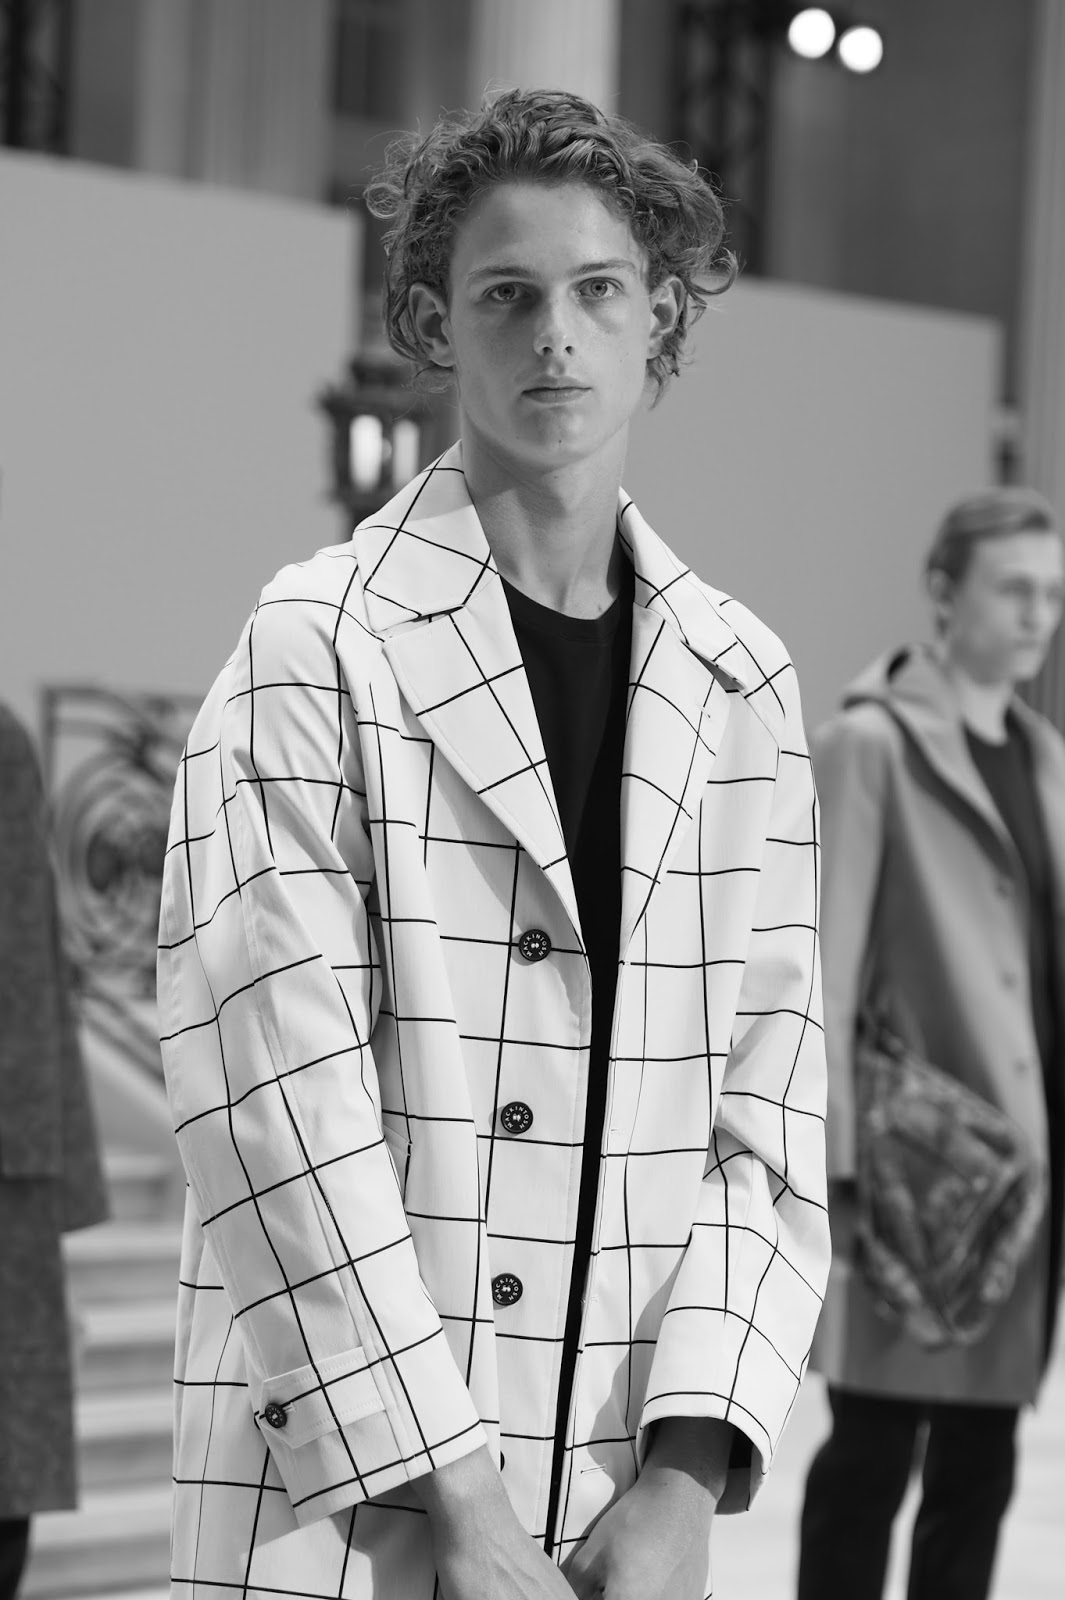 MACKINTOSH SS17 LCM PRESENTATION